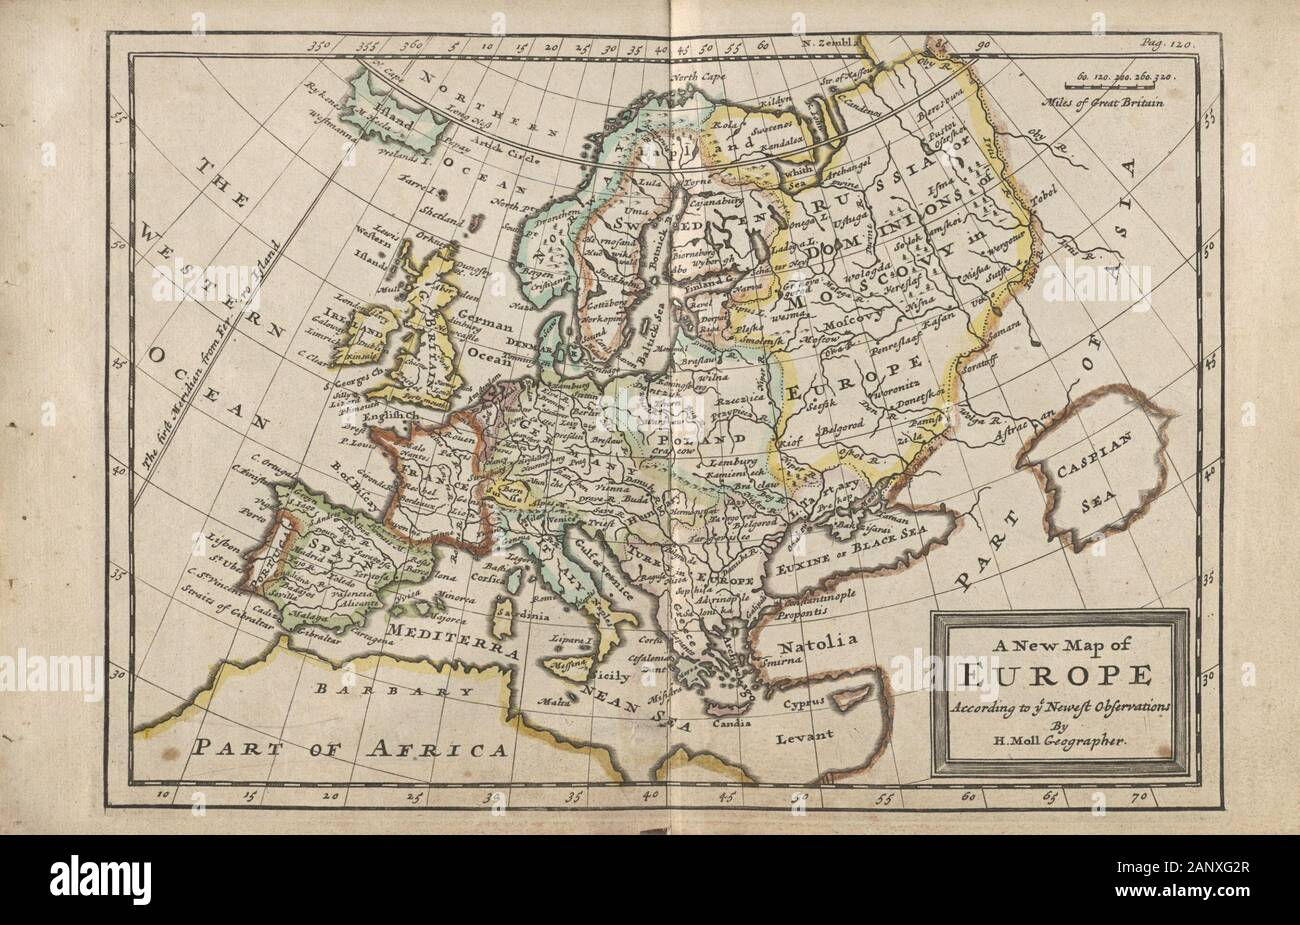 Maps 1646, 1675, 17, 17c, 17th, africa, america, american, amsterdam, ancient, antiquarian, antique, asia, atlas, book, cartographer, cartographic, cartography, century, chart, collect, collectable, colonialism, colonies, colony, continent, den, early, engraved, engraving, europe, exploration, explore, famous, geographic, geography, hand, handmade, historic, historical, history, independence, john, kaerius, keere, london, made, making, map, mapmaking, north, ocean, old, original, paper, parts, peter, petrus, pieter, pre, print, printed, prospect, published, rare, revolution, sea, settler, sett Stock Photo